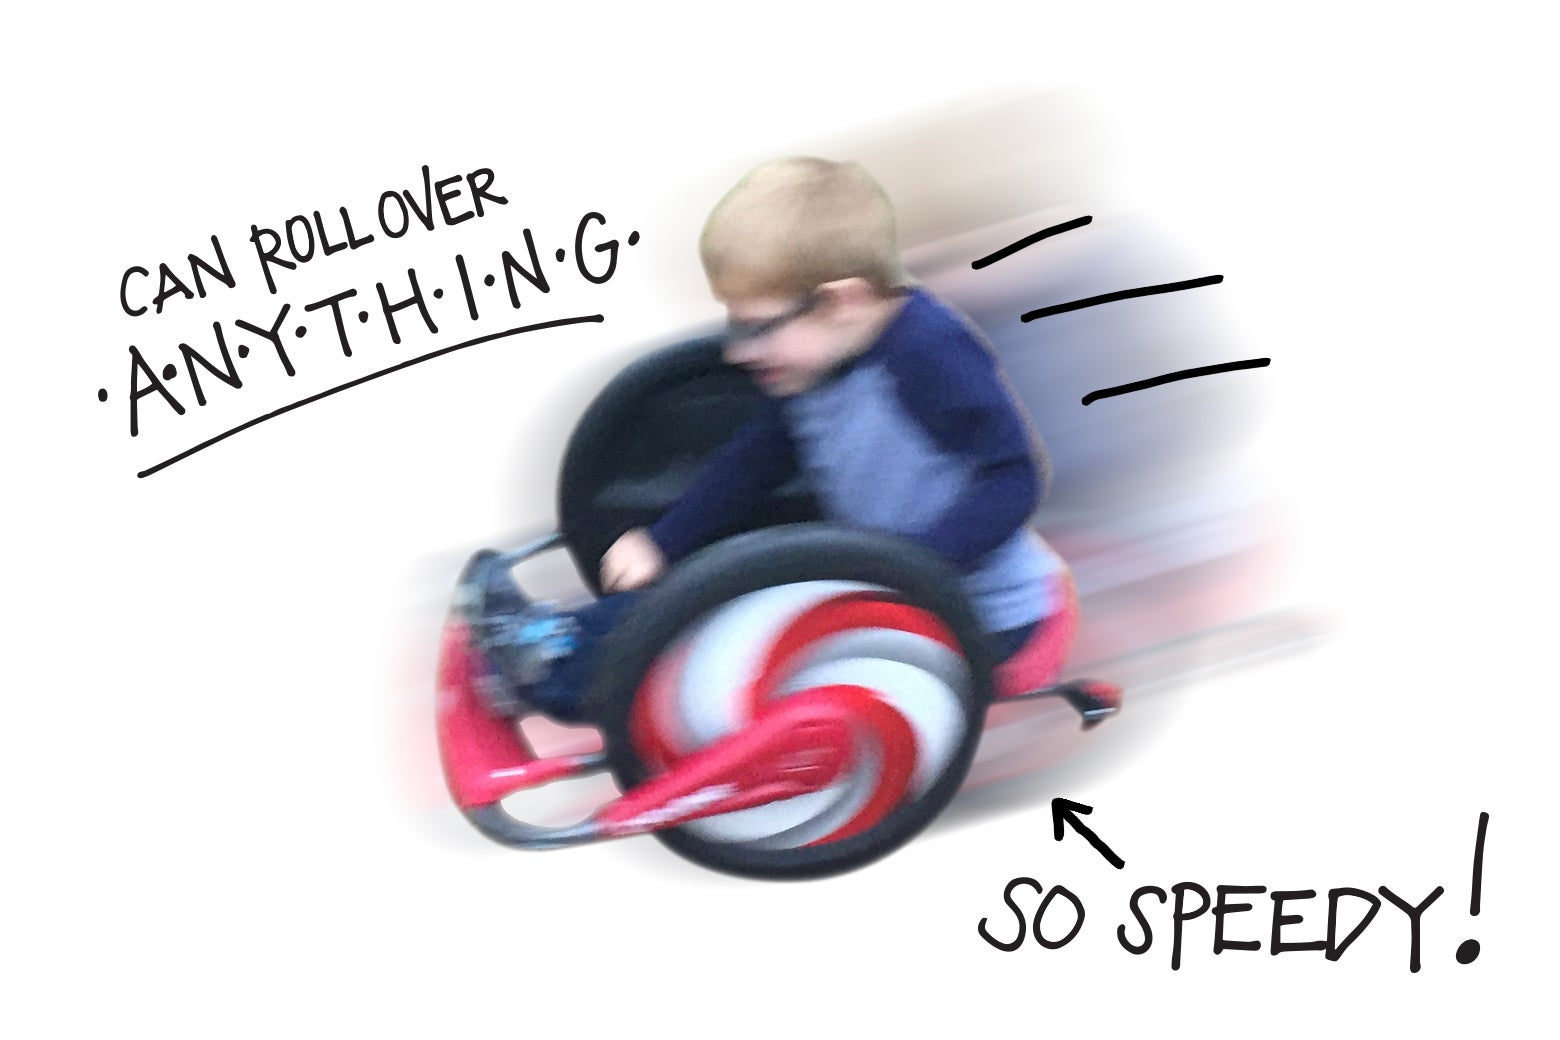 Child riding the Cyclone toy.